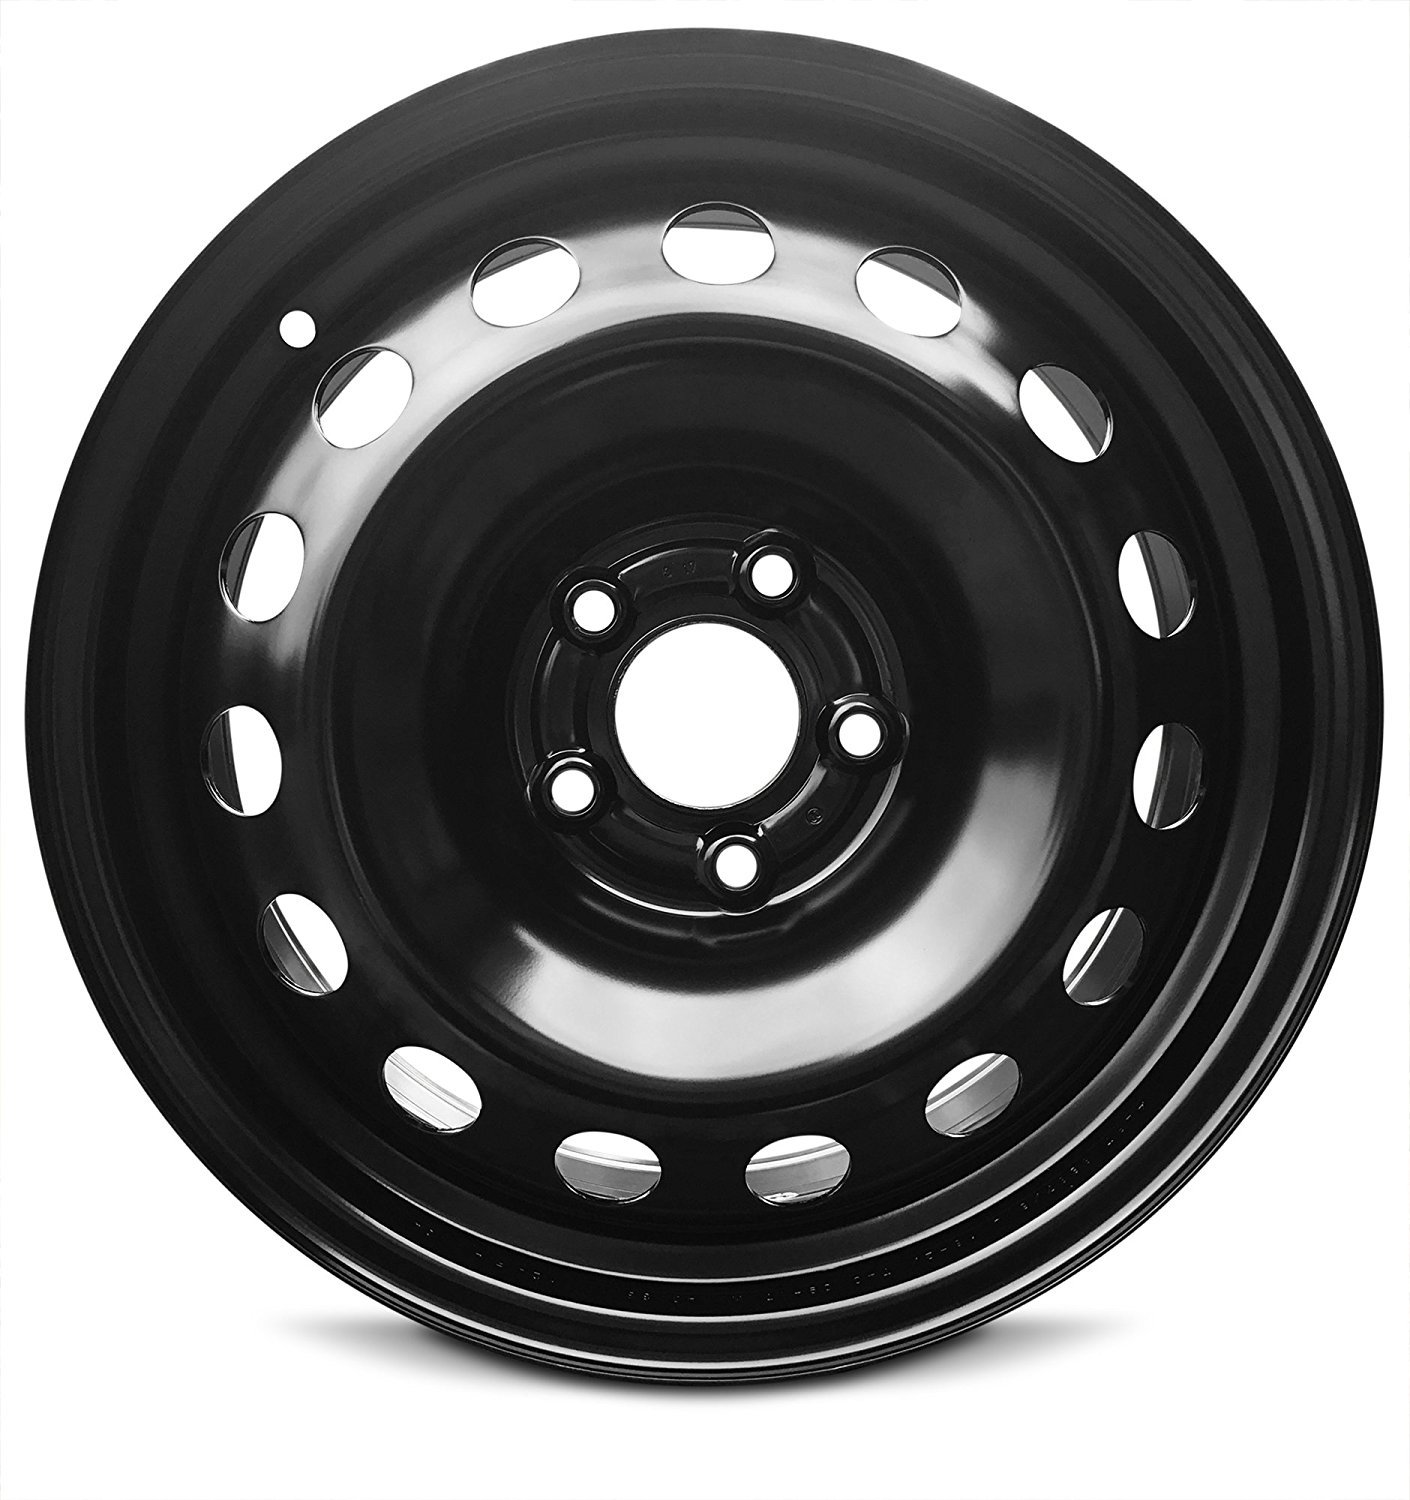 Road Ready Car Wheel For 2015-2019 Jeep Renegade 16 Inch 5 Lug Black Steel Rim Fits R17 Tire - Exact OEM Replacement - Full-Size Spare